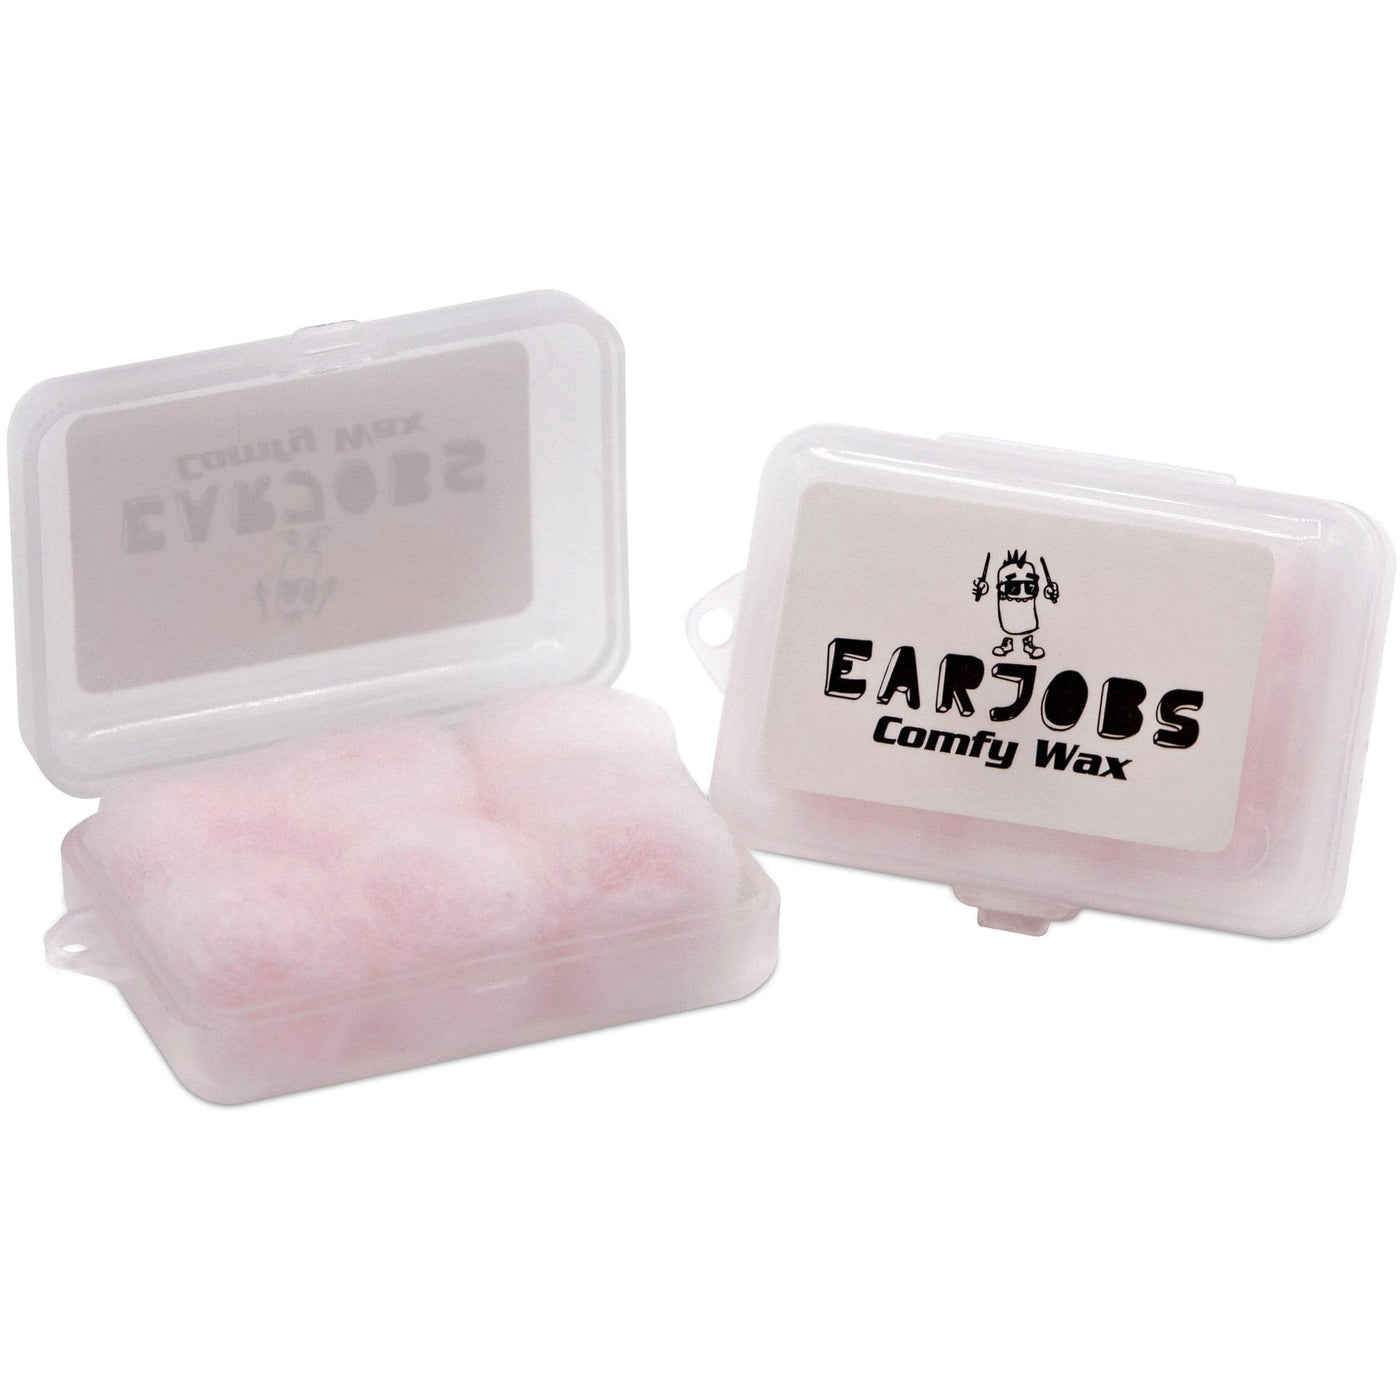 Earjobs™ Comfy Wax Ear Plugs